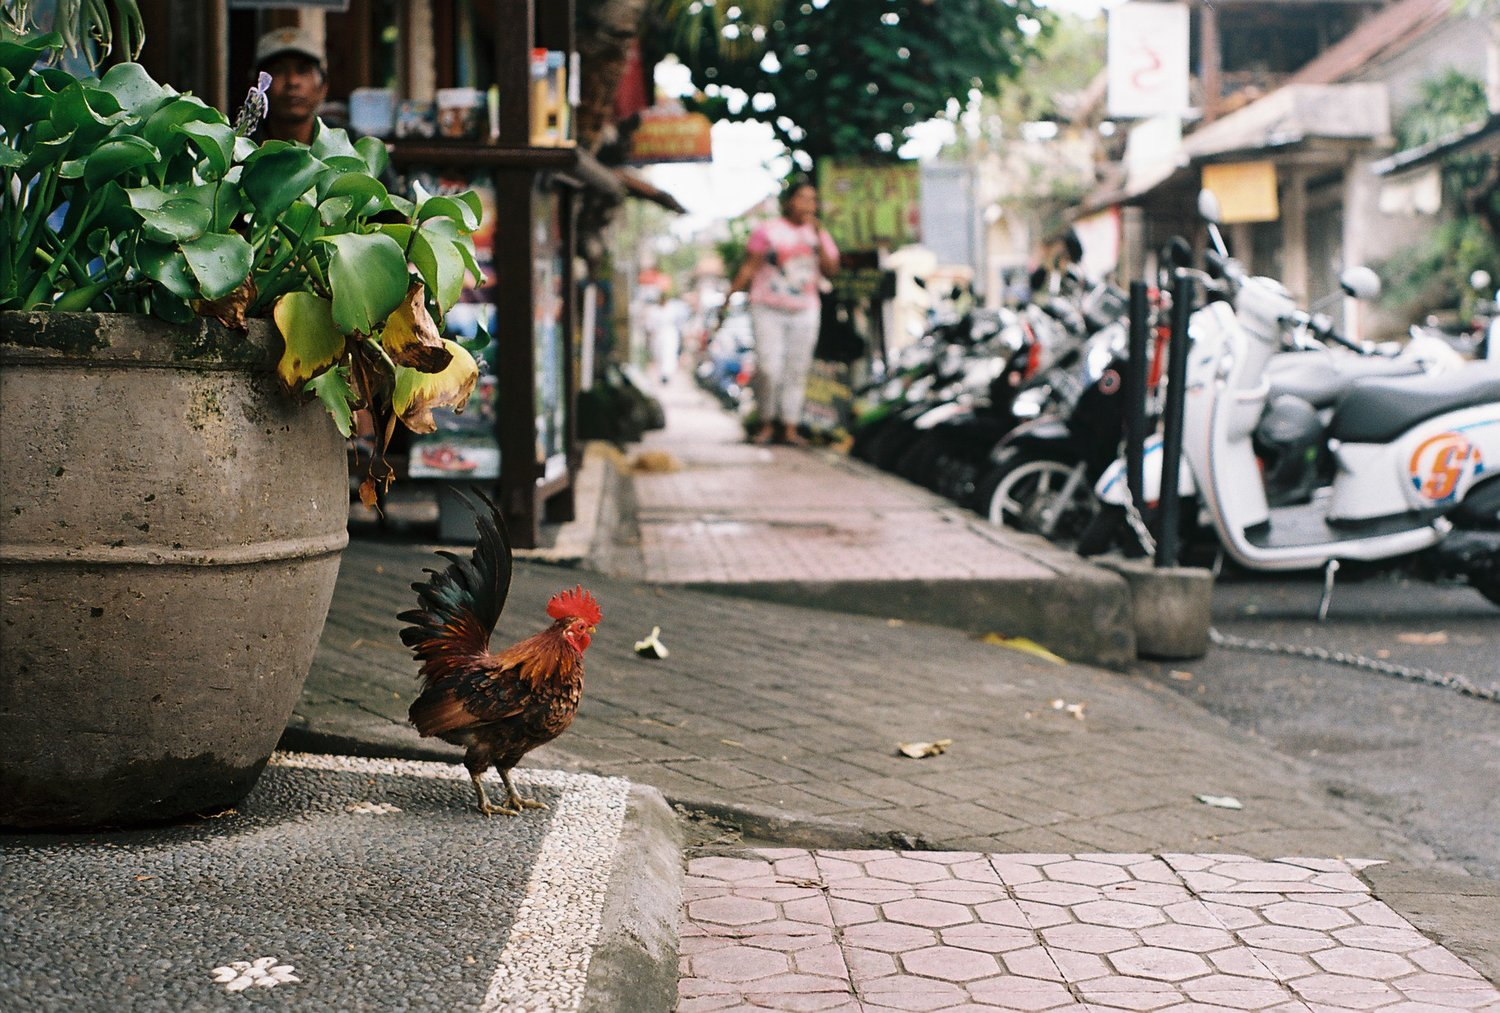 Street Chicken Ubud Bali Analogue Travel Photographer